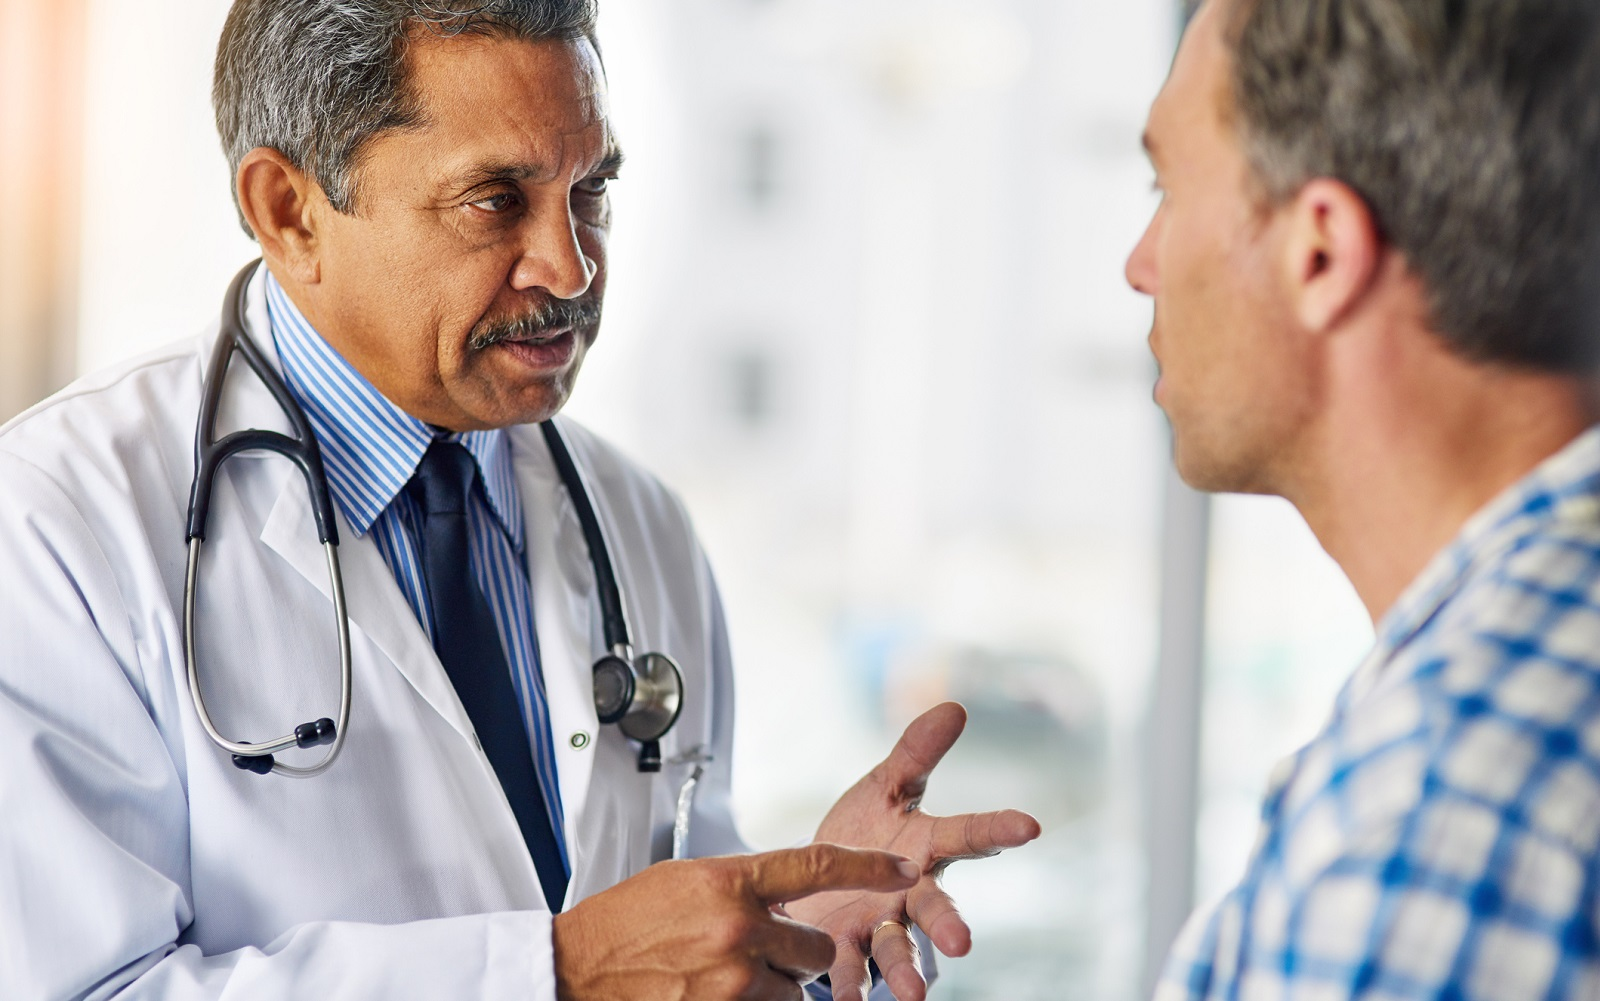 A male doctor giving advice to a male patient.